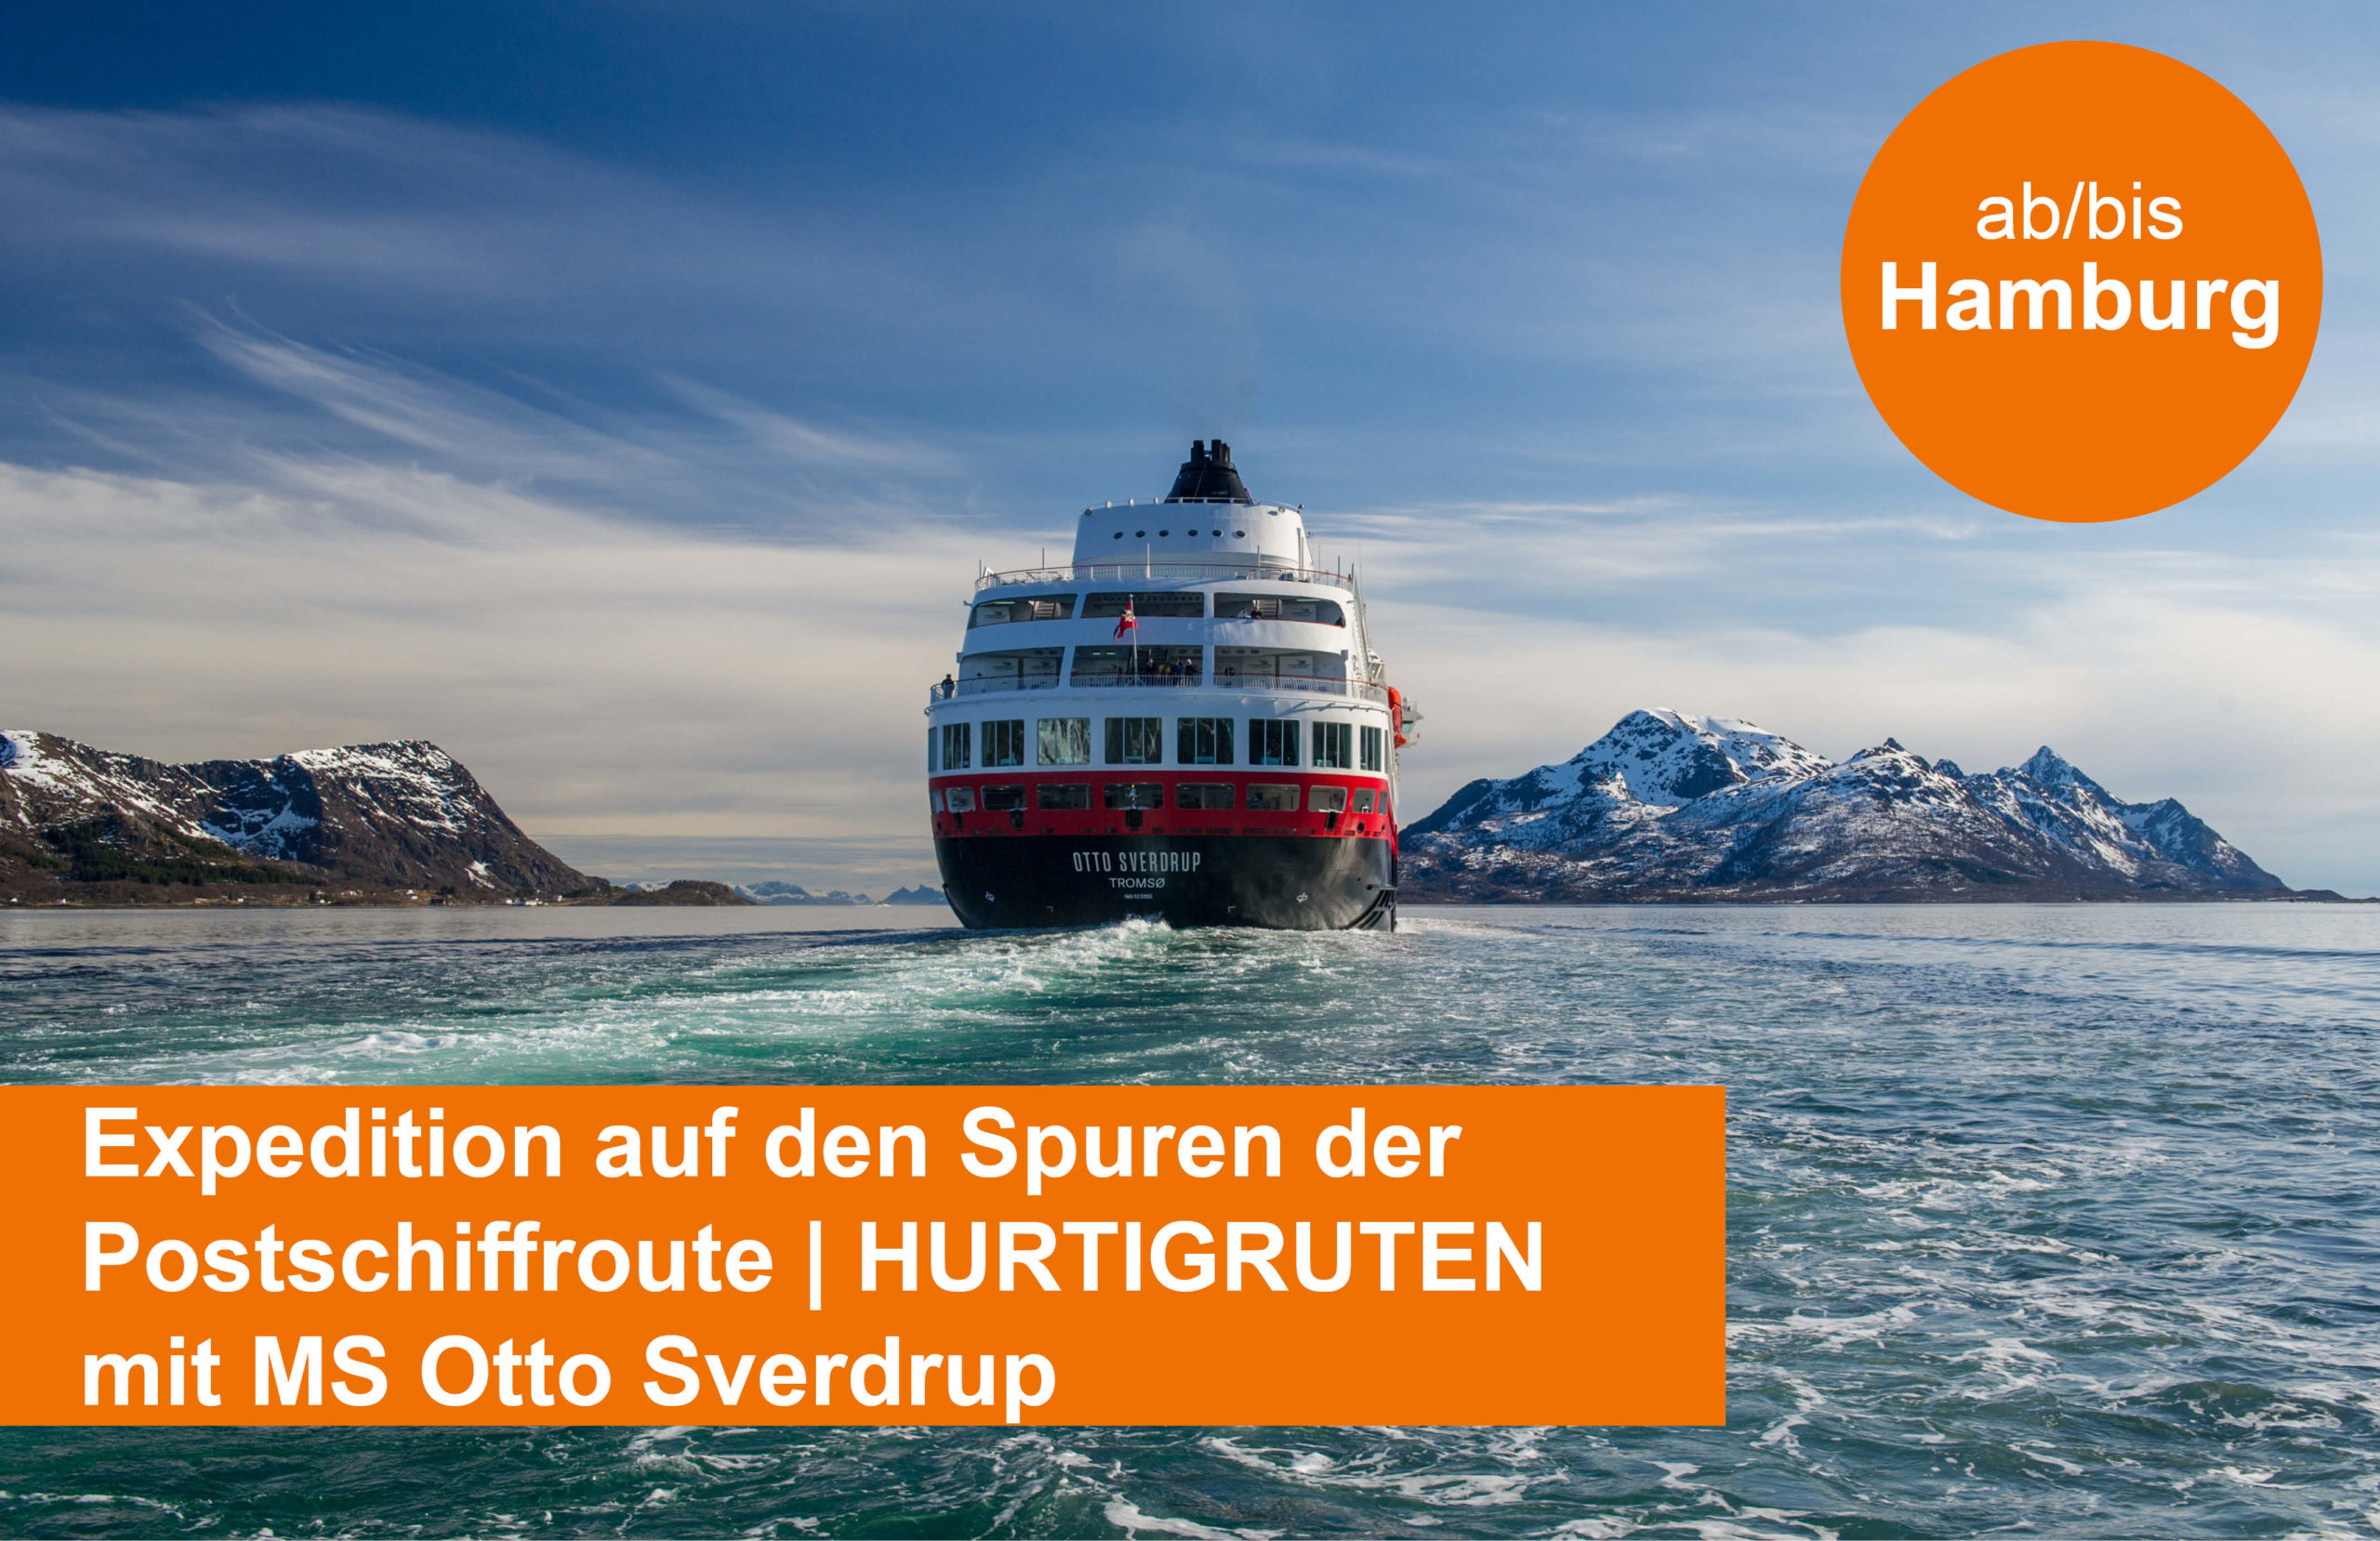 Hurtigruten Expedition ab/bis Hamburg mit MS Otto Sverdrup